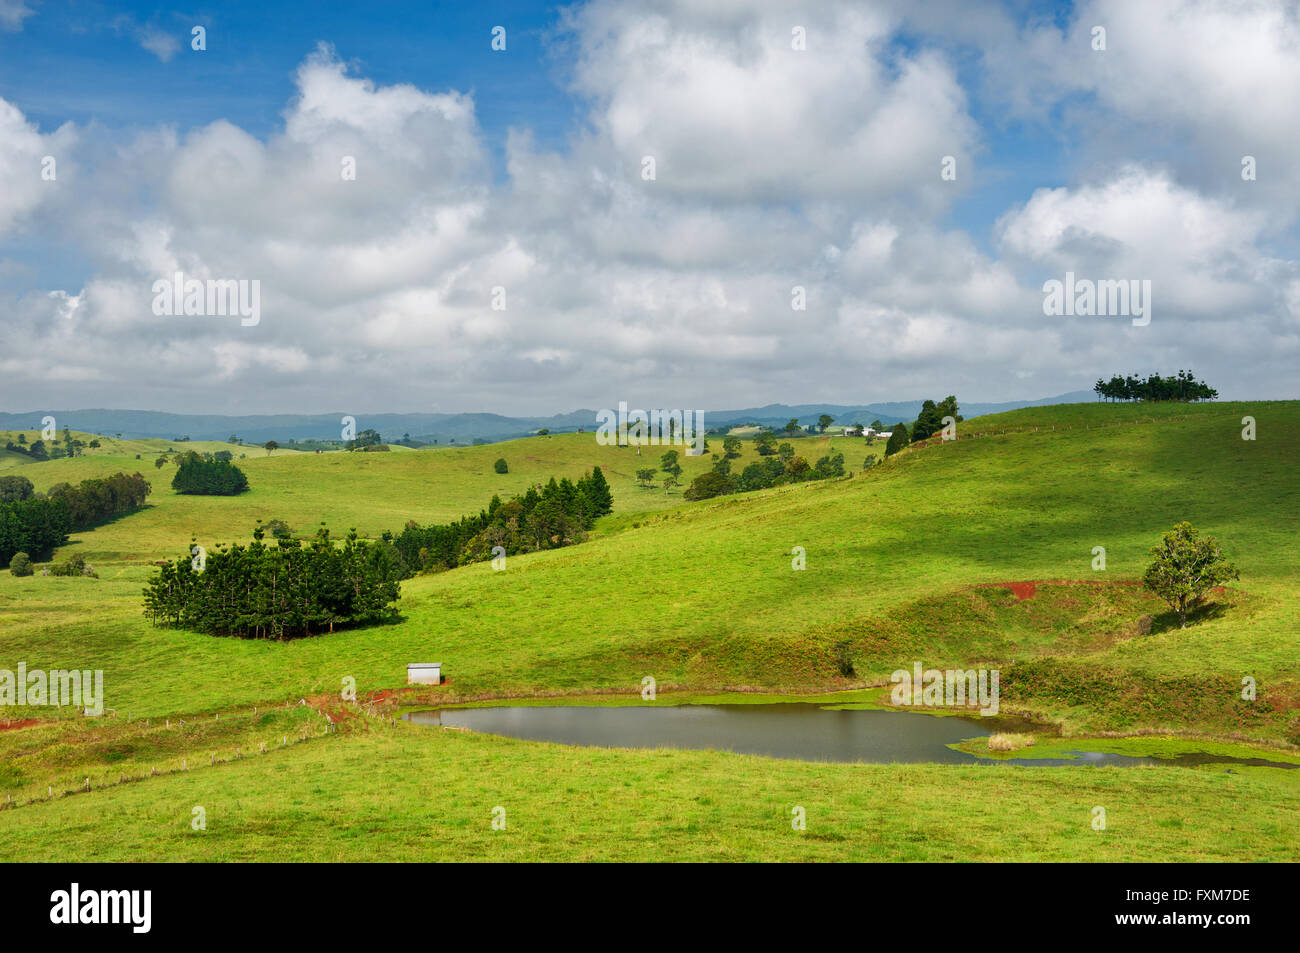 Green hills are typical for the scenery of the Atherton Tableland. - Stock Image